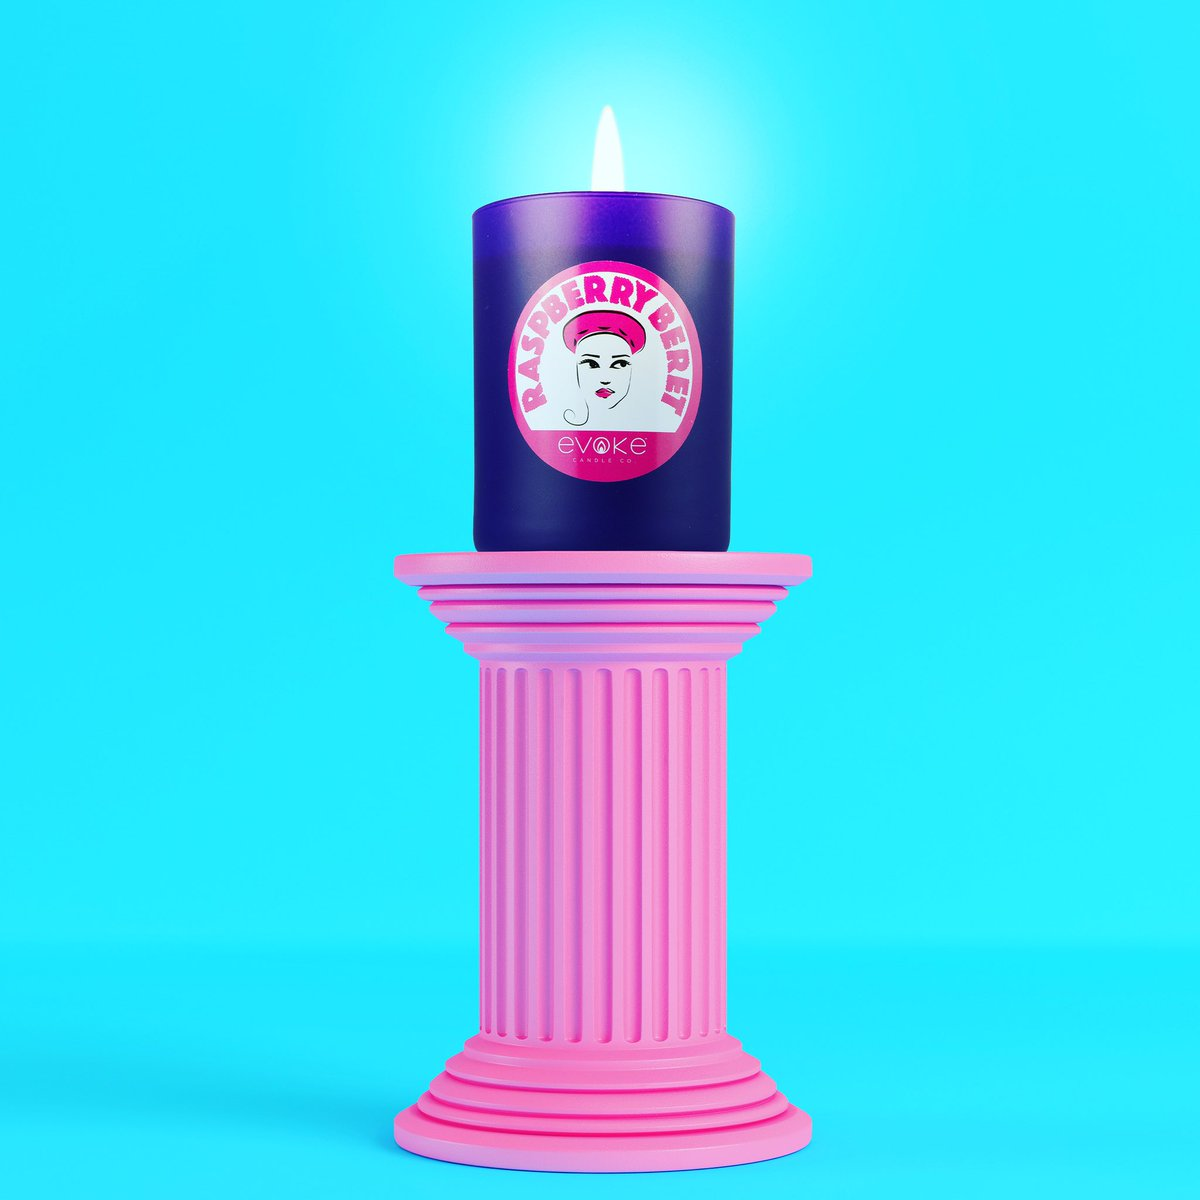 Love the colours of this candle, and it's yummy raspberry sangria scent reminds me of a warm sunny day ! #evokecandleco #peace #cheers #sangria #raspberryberet #fridayvibes #candlejunkie #princeinspired #candle #madeinusa #handpoured #womanowned #vegan